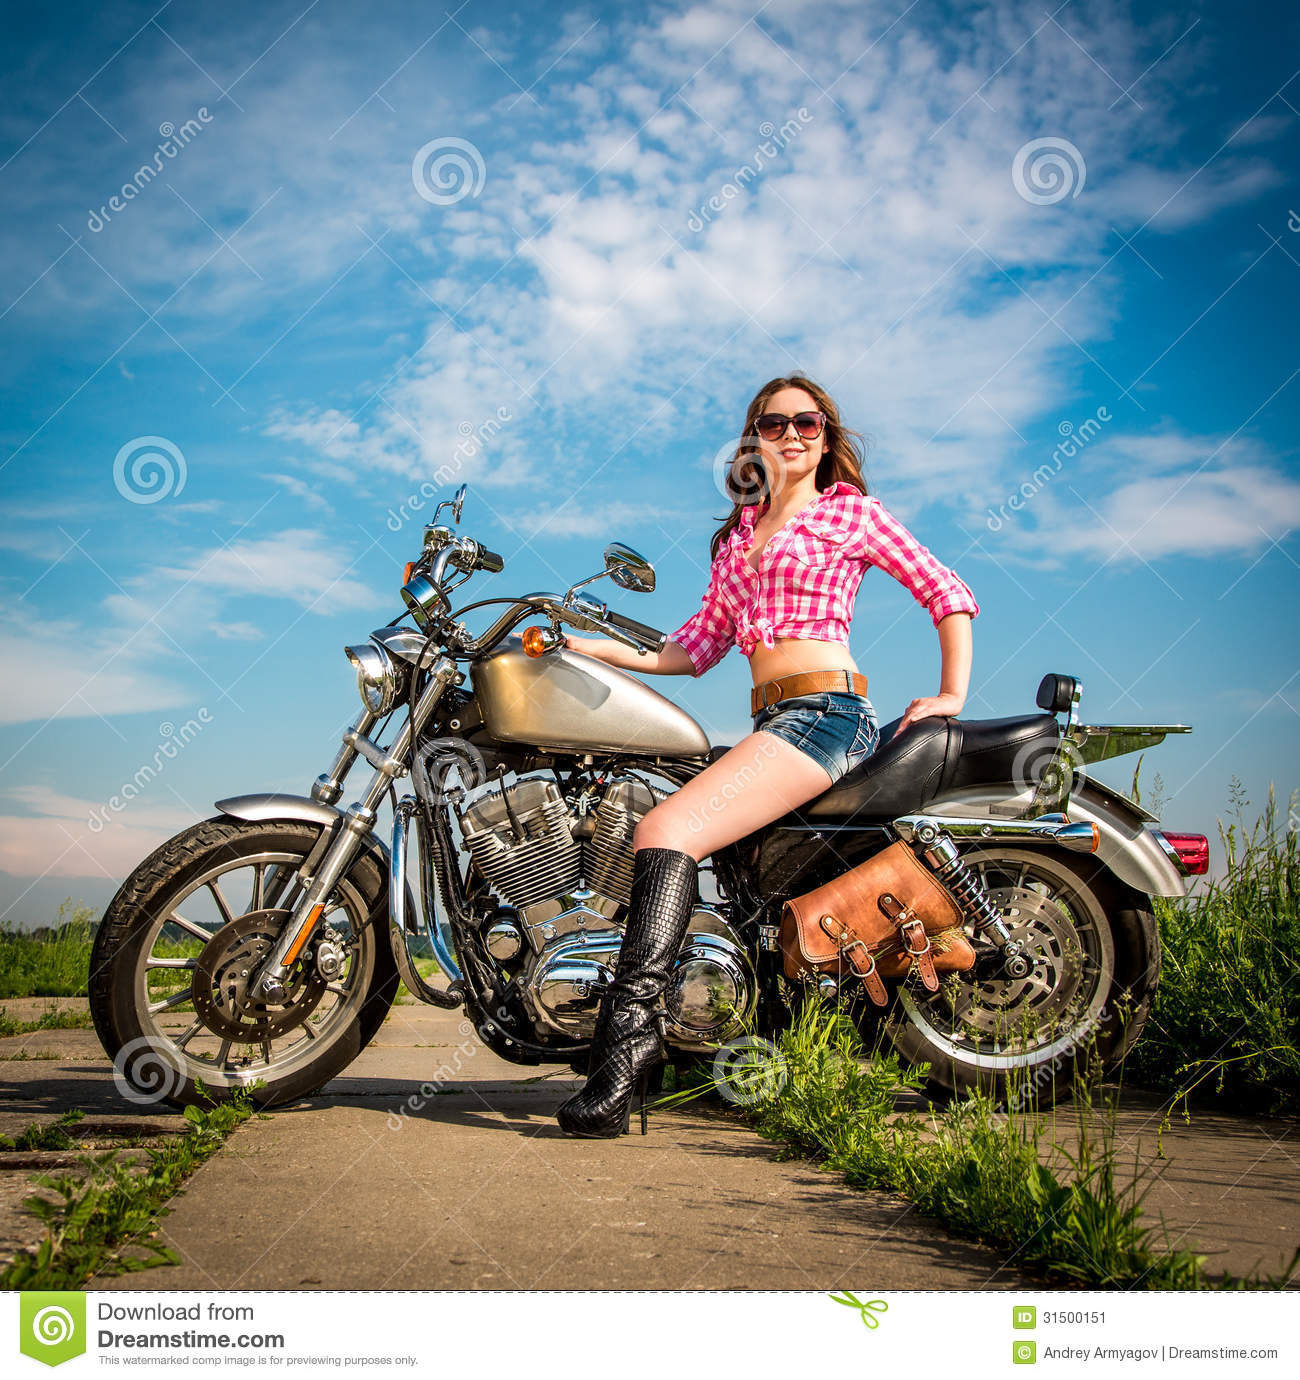 Motorcycle and girl photos-8331